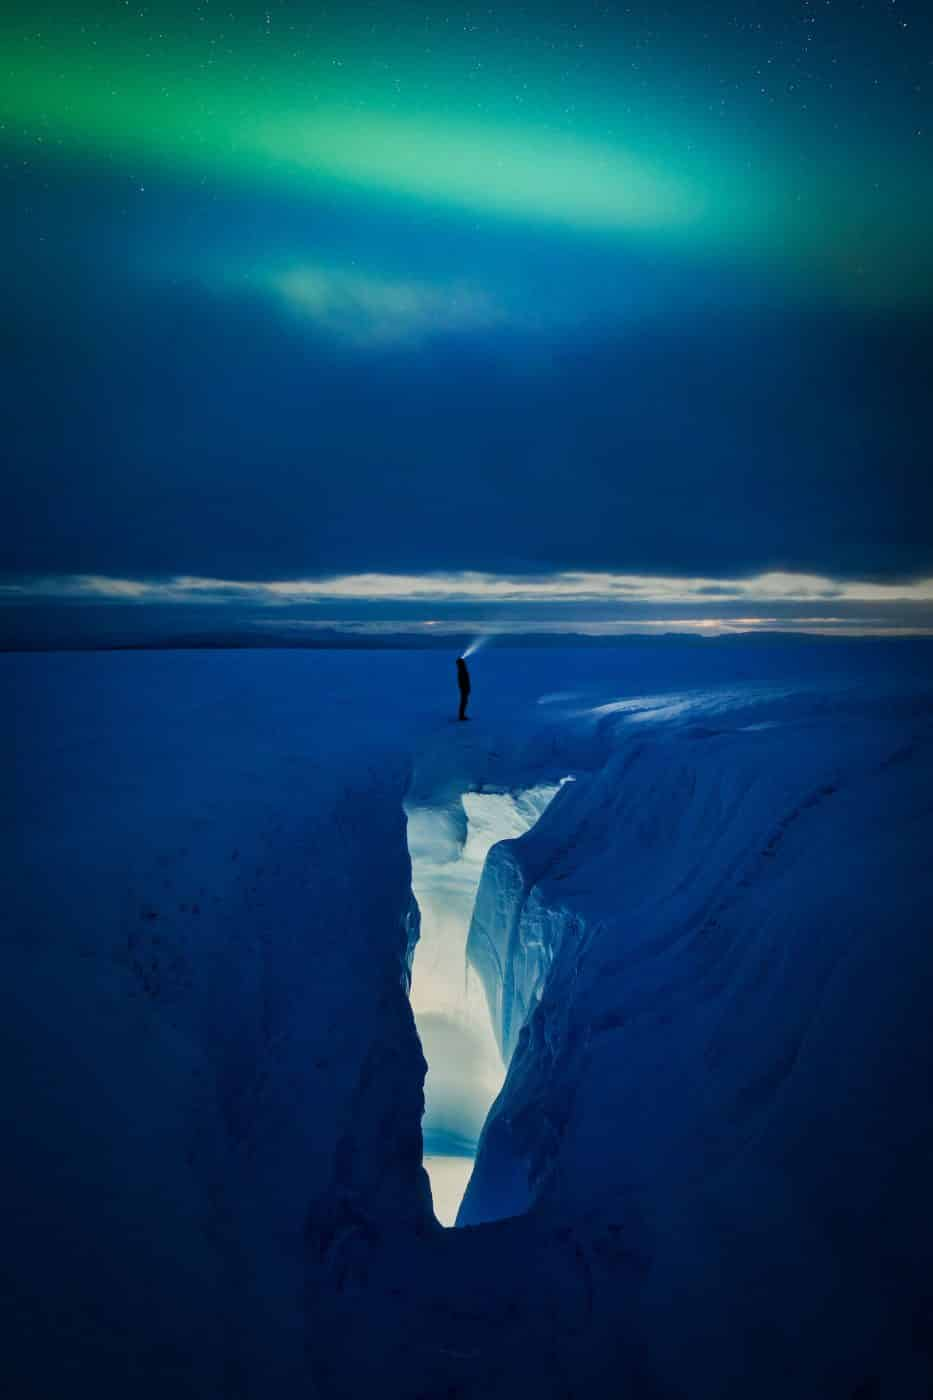 A man with a flash light looking up to the northern lights by a crevasse on the Greeland Ice Sheet near Kangerlussuaq. By Paul Zizka